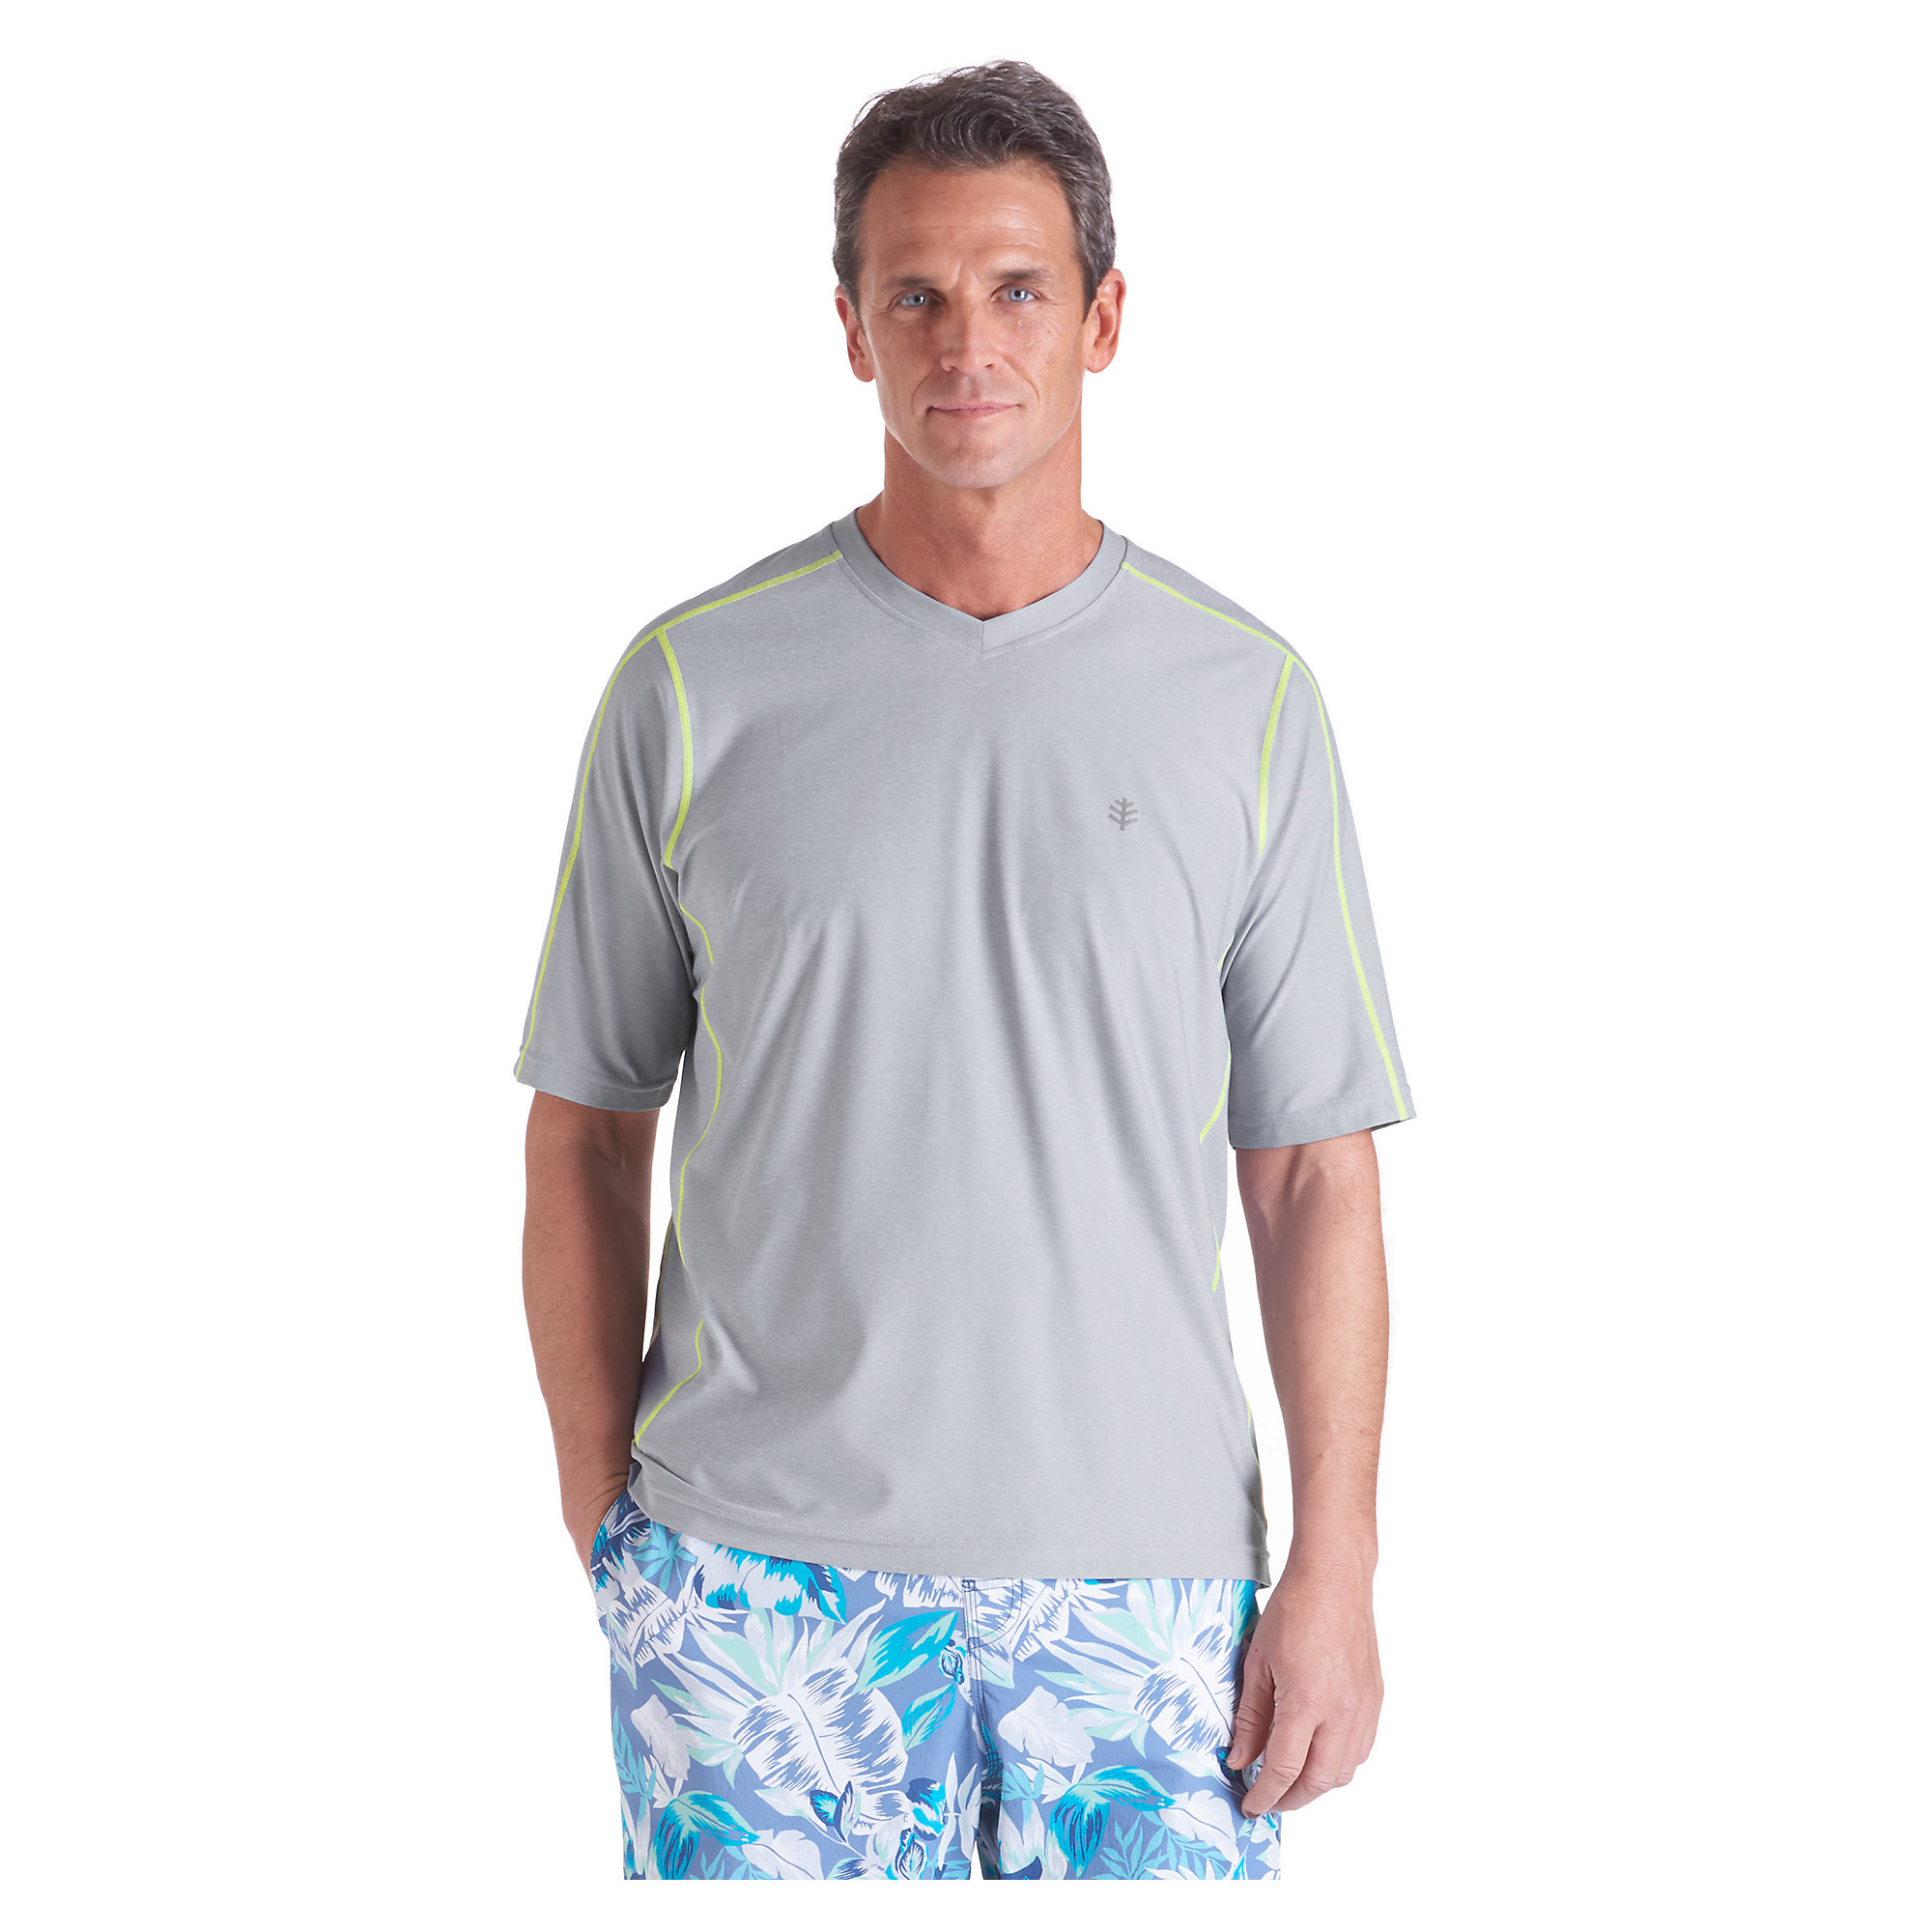 Coolibar Upf 50 Men 39 S Short Sleeve Aqua T Shirt Uv